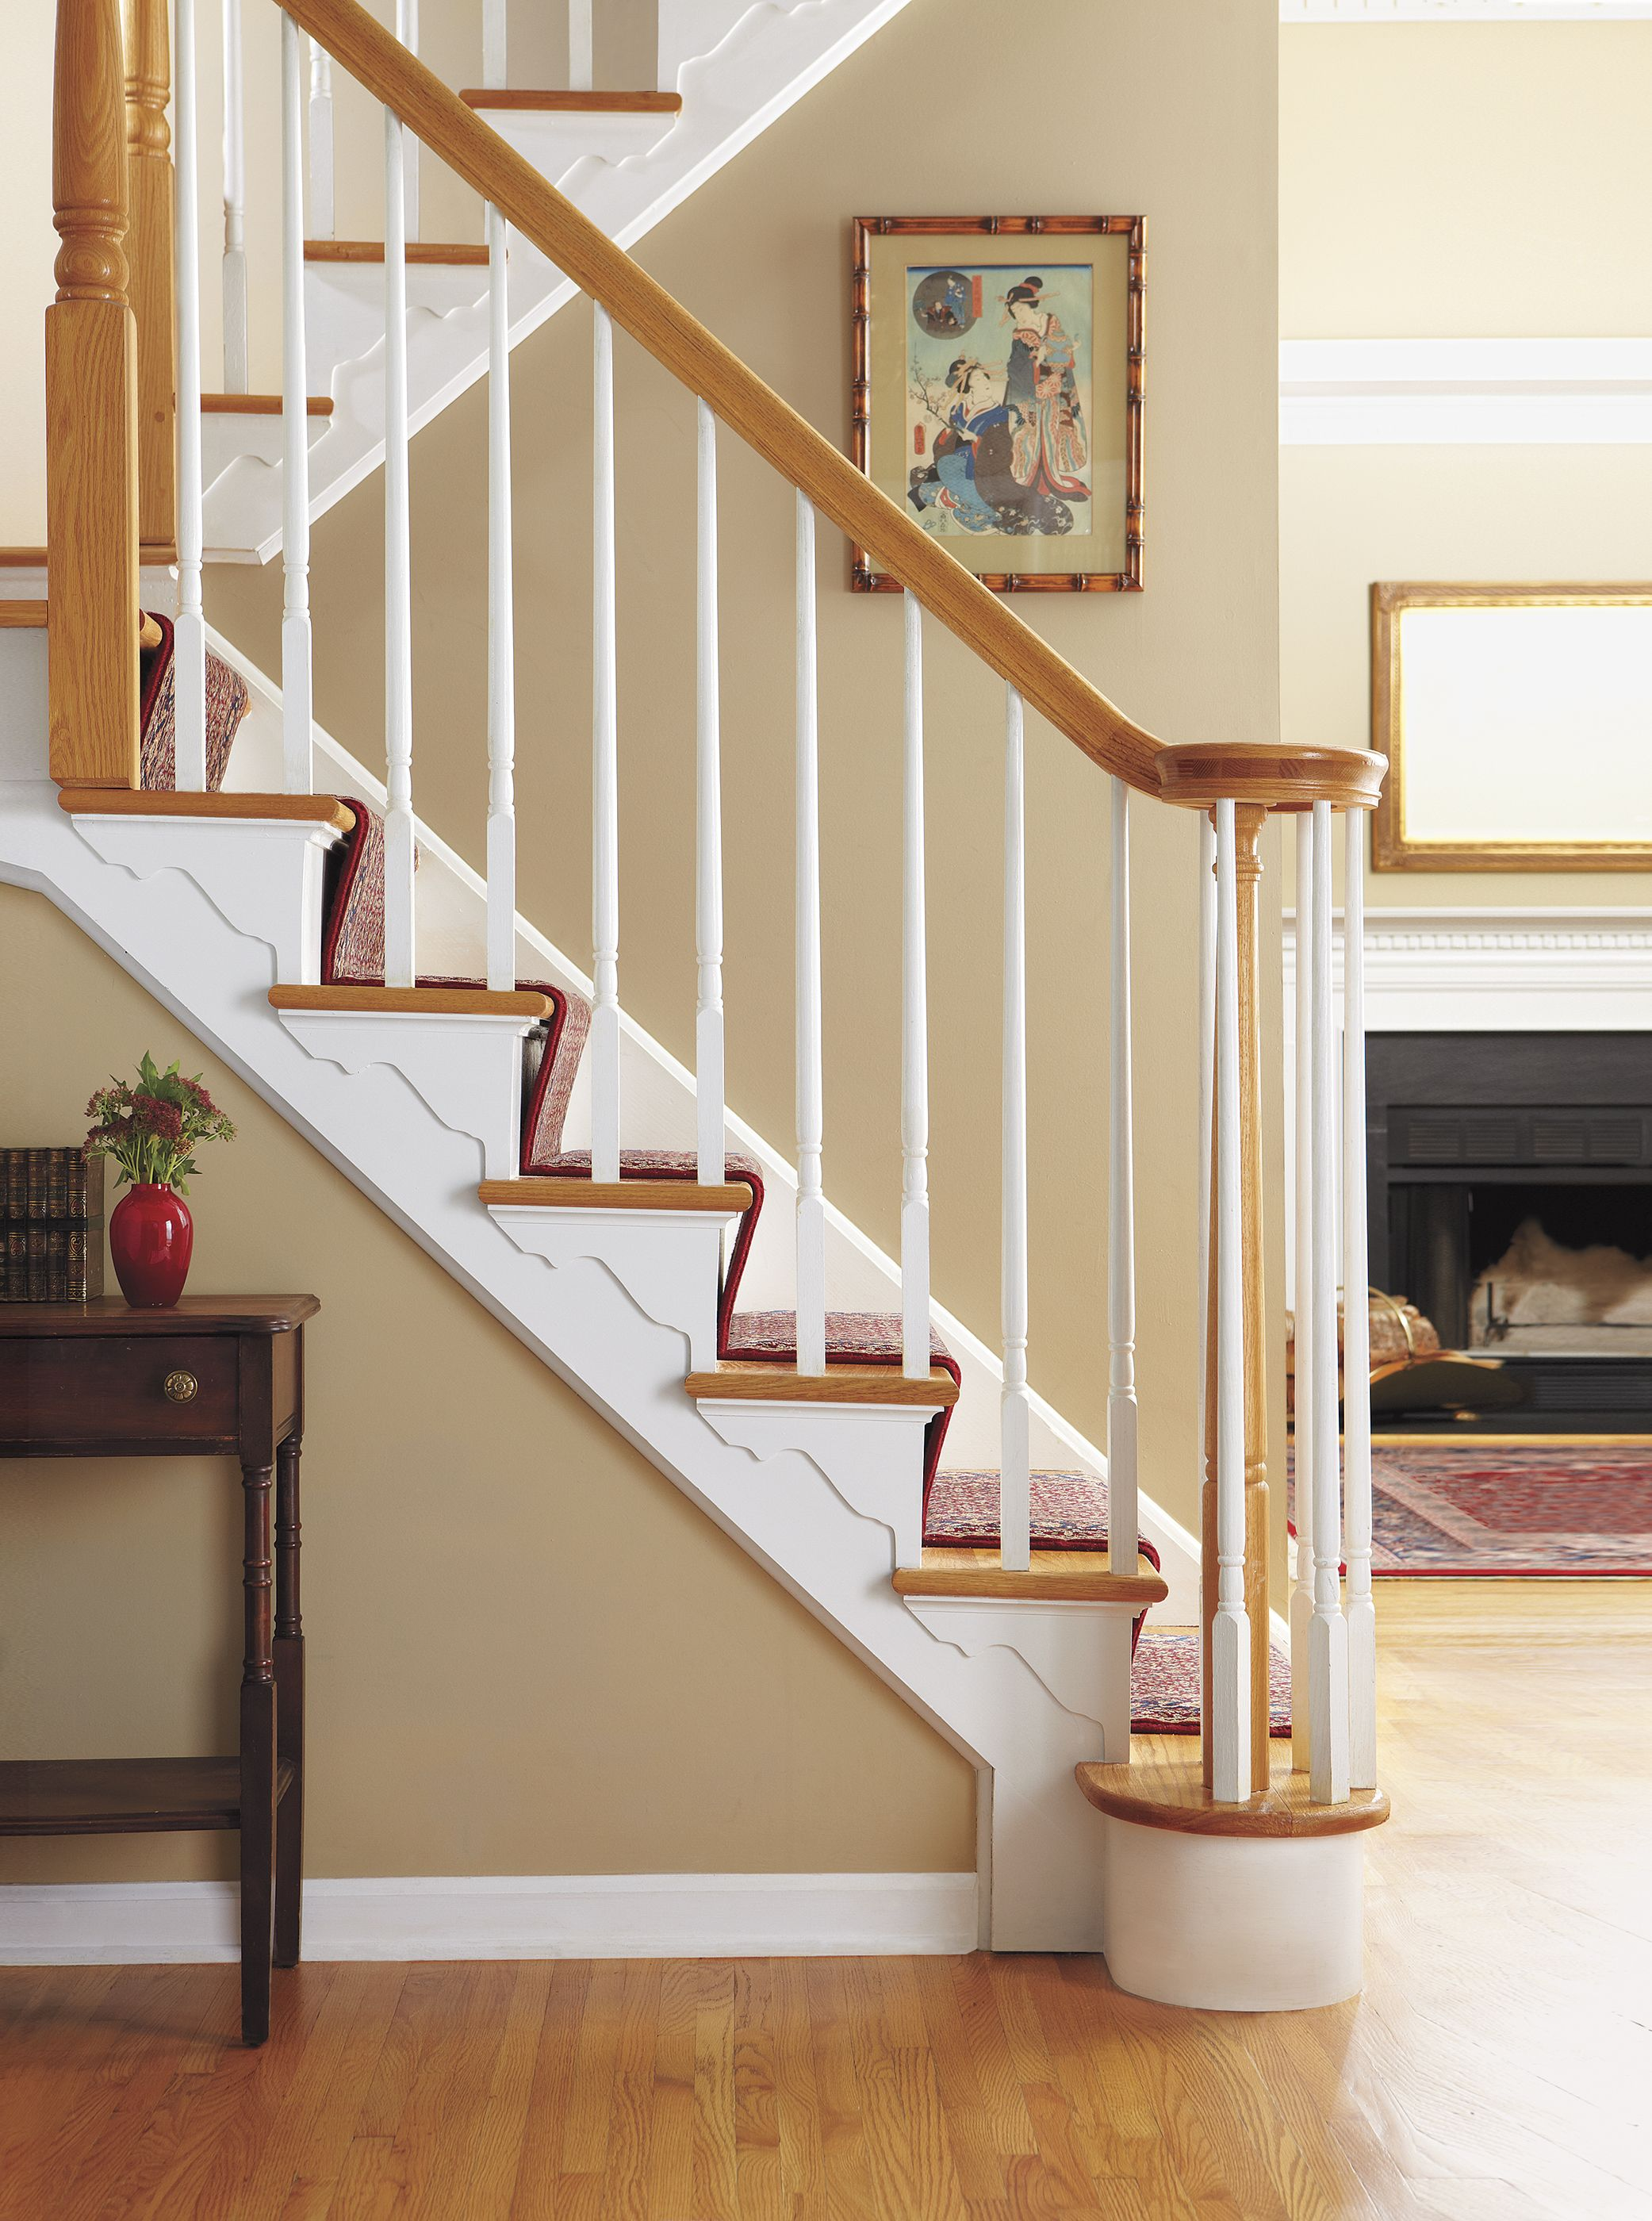 21 Budget Home Improvement Projects Stair Brackets Home   Stairs For Homes Designs   Tv Lounge   Fabrication   Creative   Small House   Residential